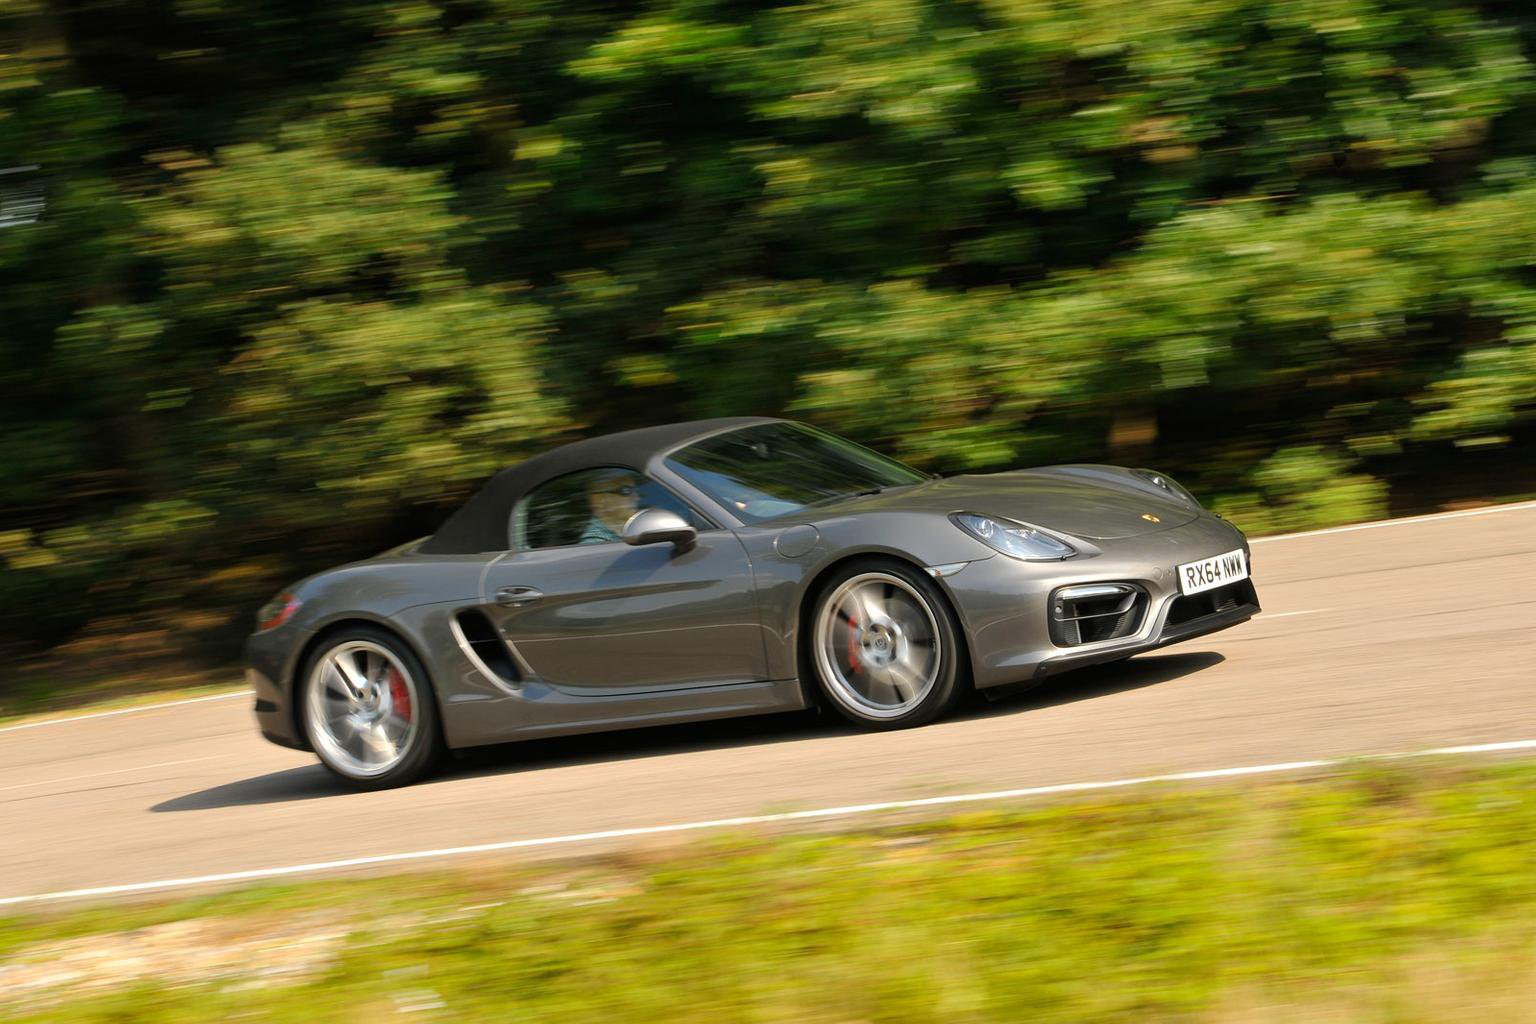 2014 Porsche Boxster GTS review